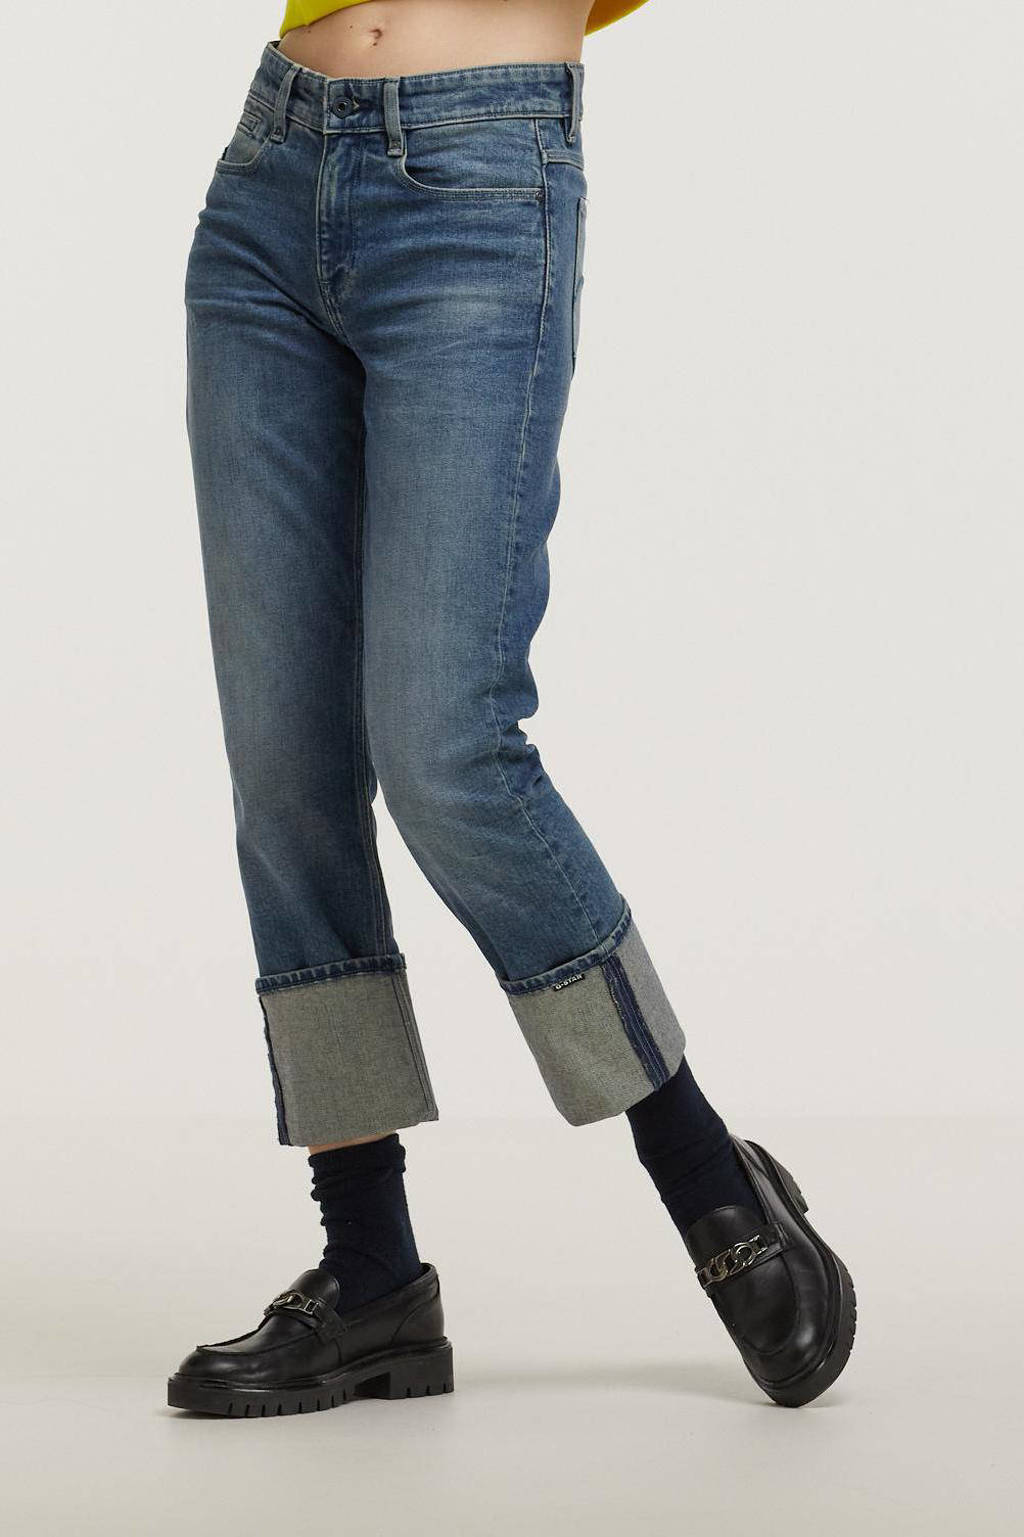 G-Star RAW NOXER high waist straight fit jeans faded cascade